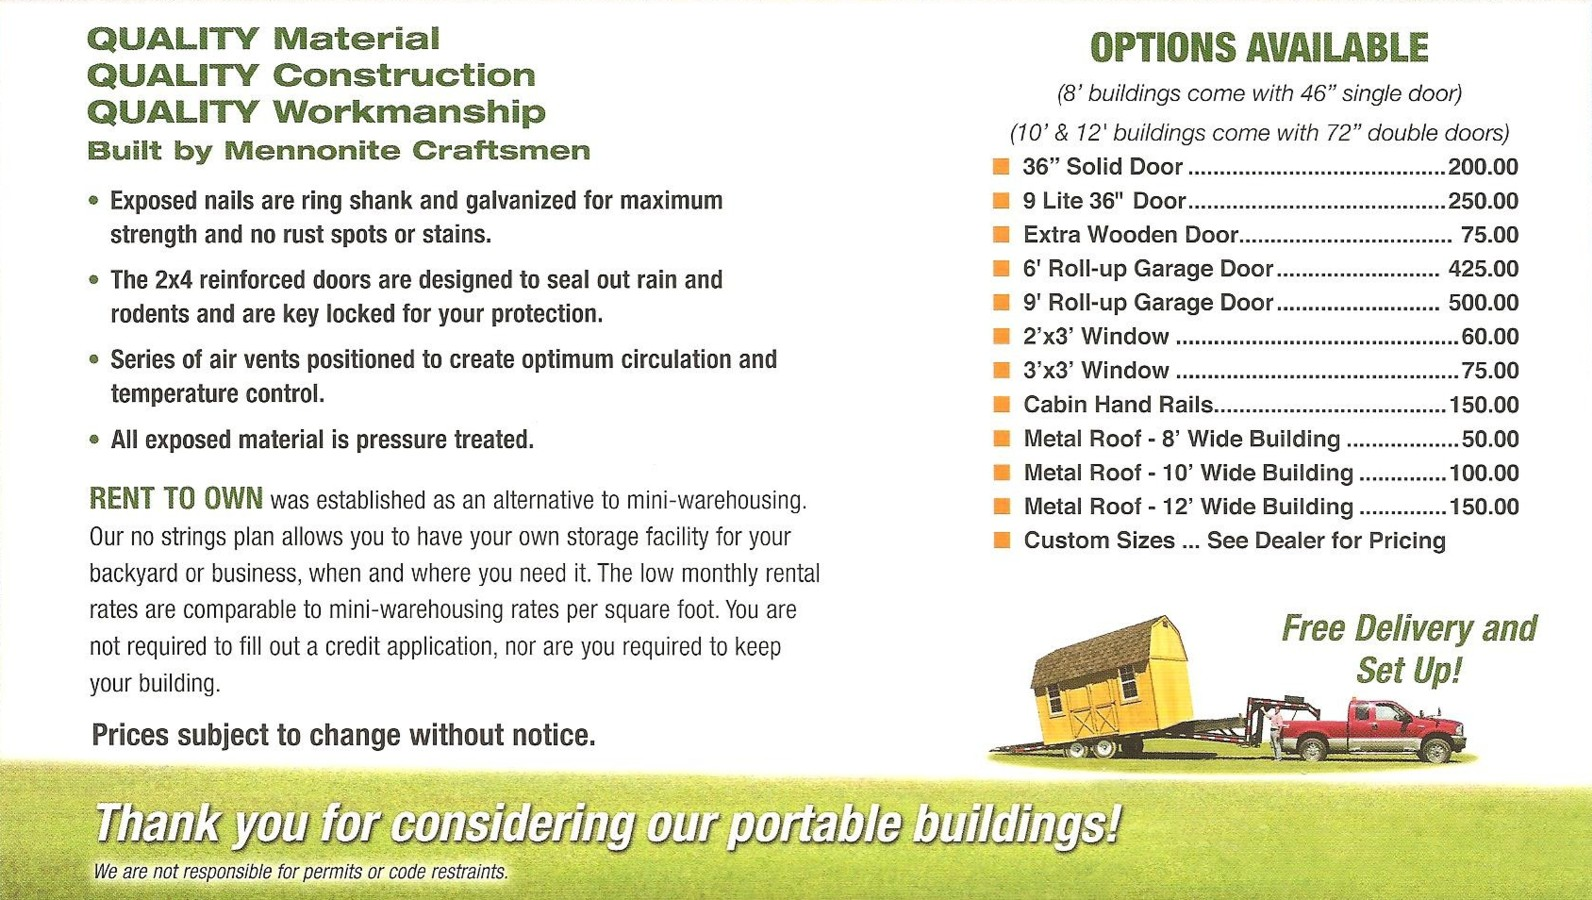 Derksen portable buildings at interstate plaza february 2012 for Builders prices